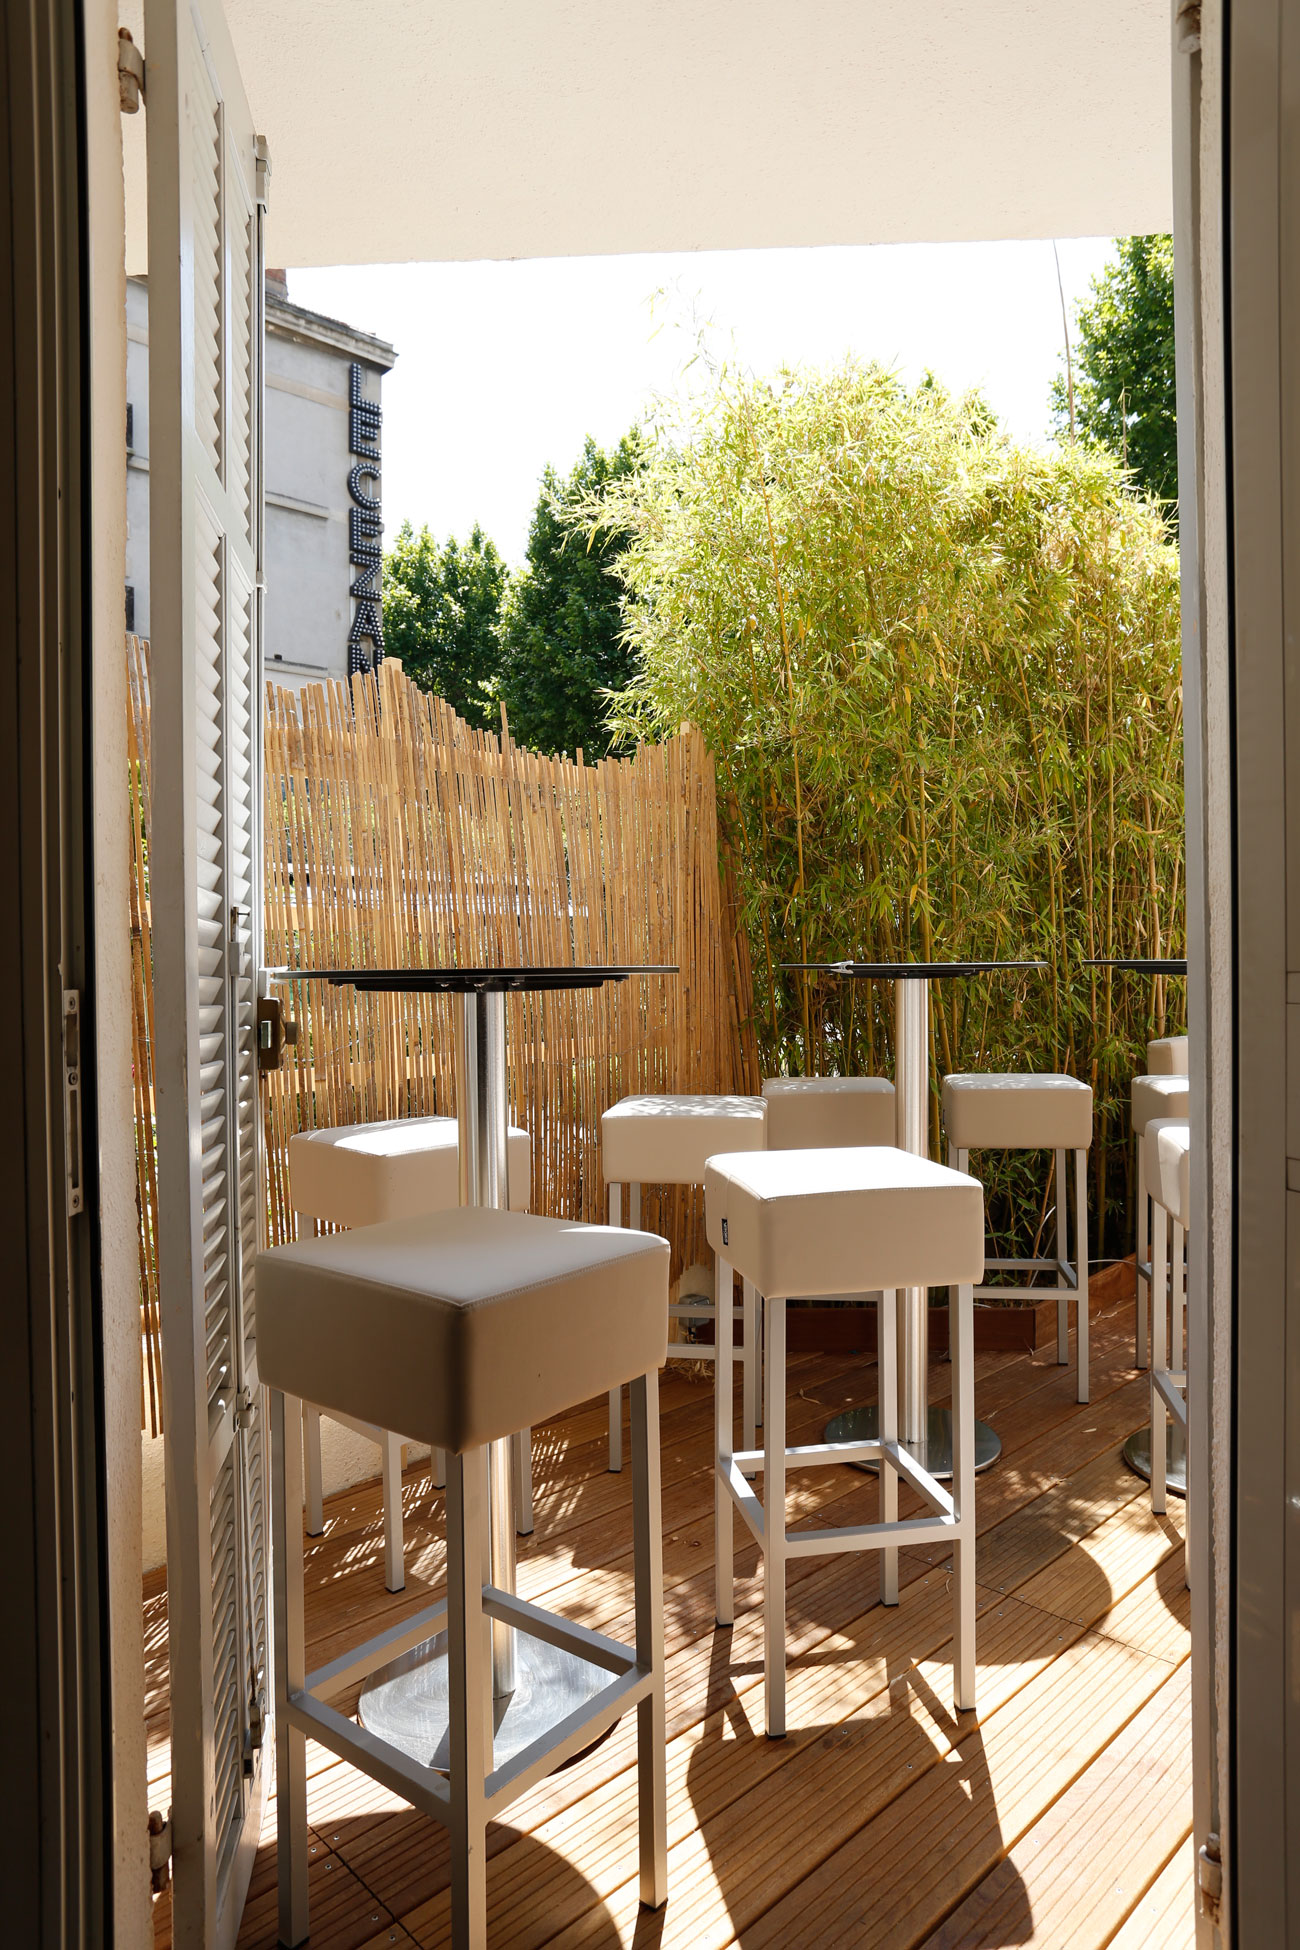 o-3-lounges-rest--silleria-verges-mobilier